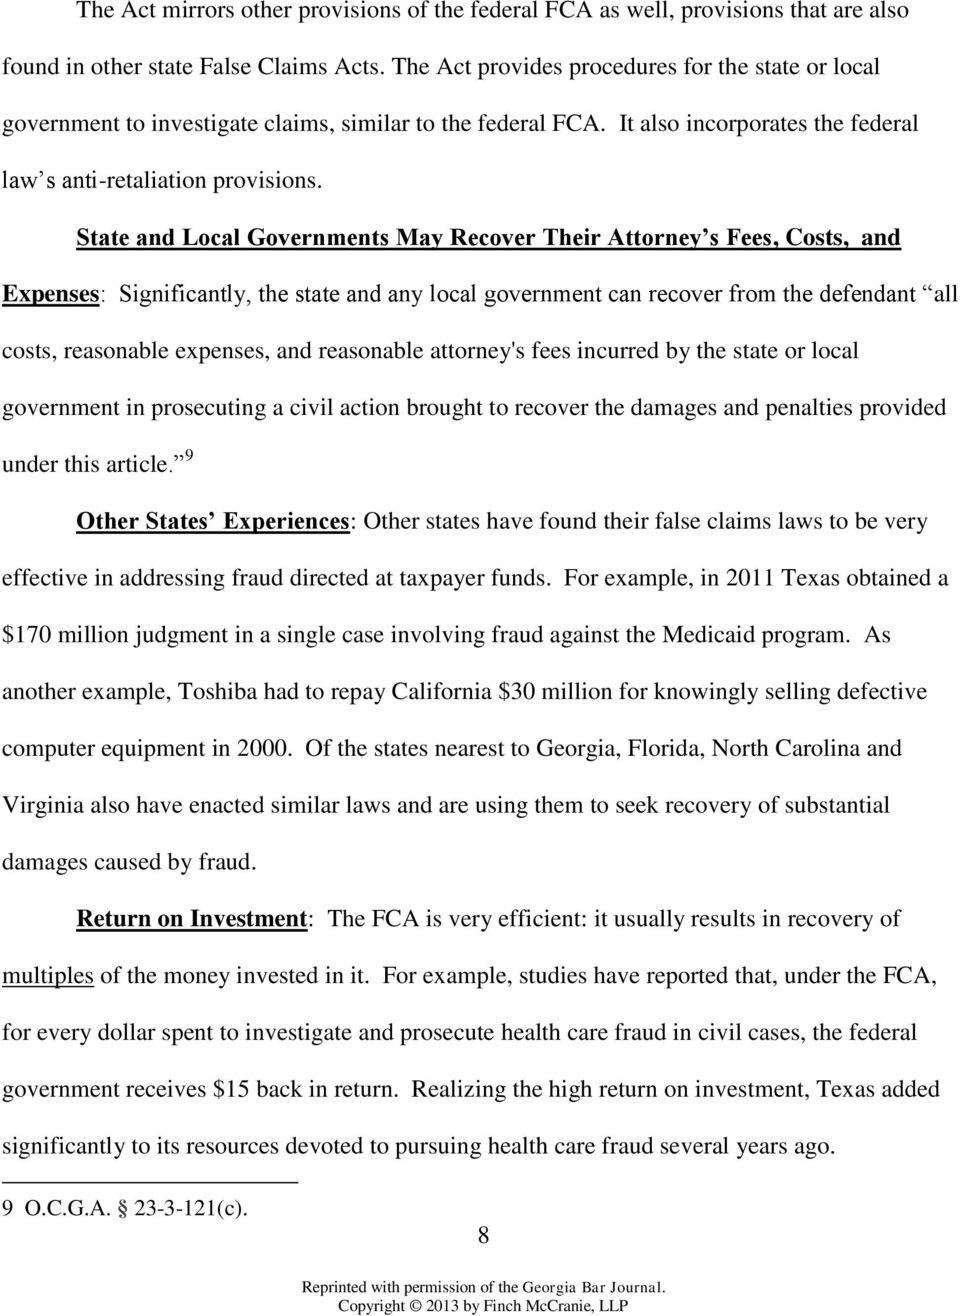 State and Local Governments May Recover Their Attorney s Fees, Costs, and Expenses: Significantly, the state and any local government can recover from the defendant all costs, reasonable expenses,